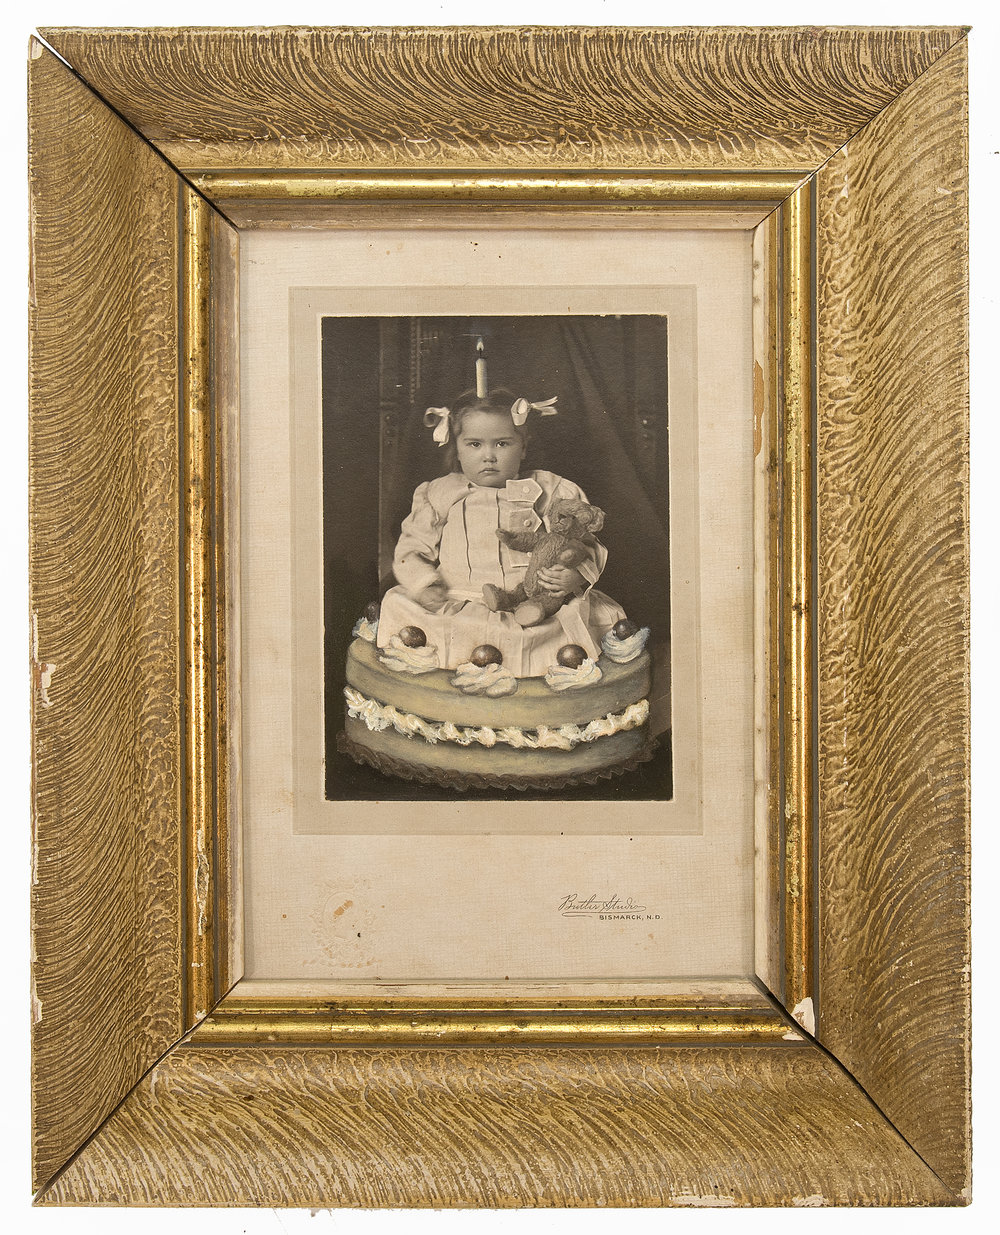 Jana Paleckova,  untitled (little girl in cake),  2017, oil paint on vintage photograph, 9 1/4h x 9 1/4w in.